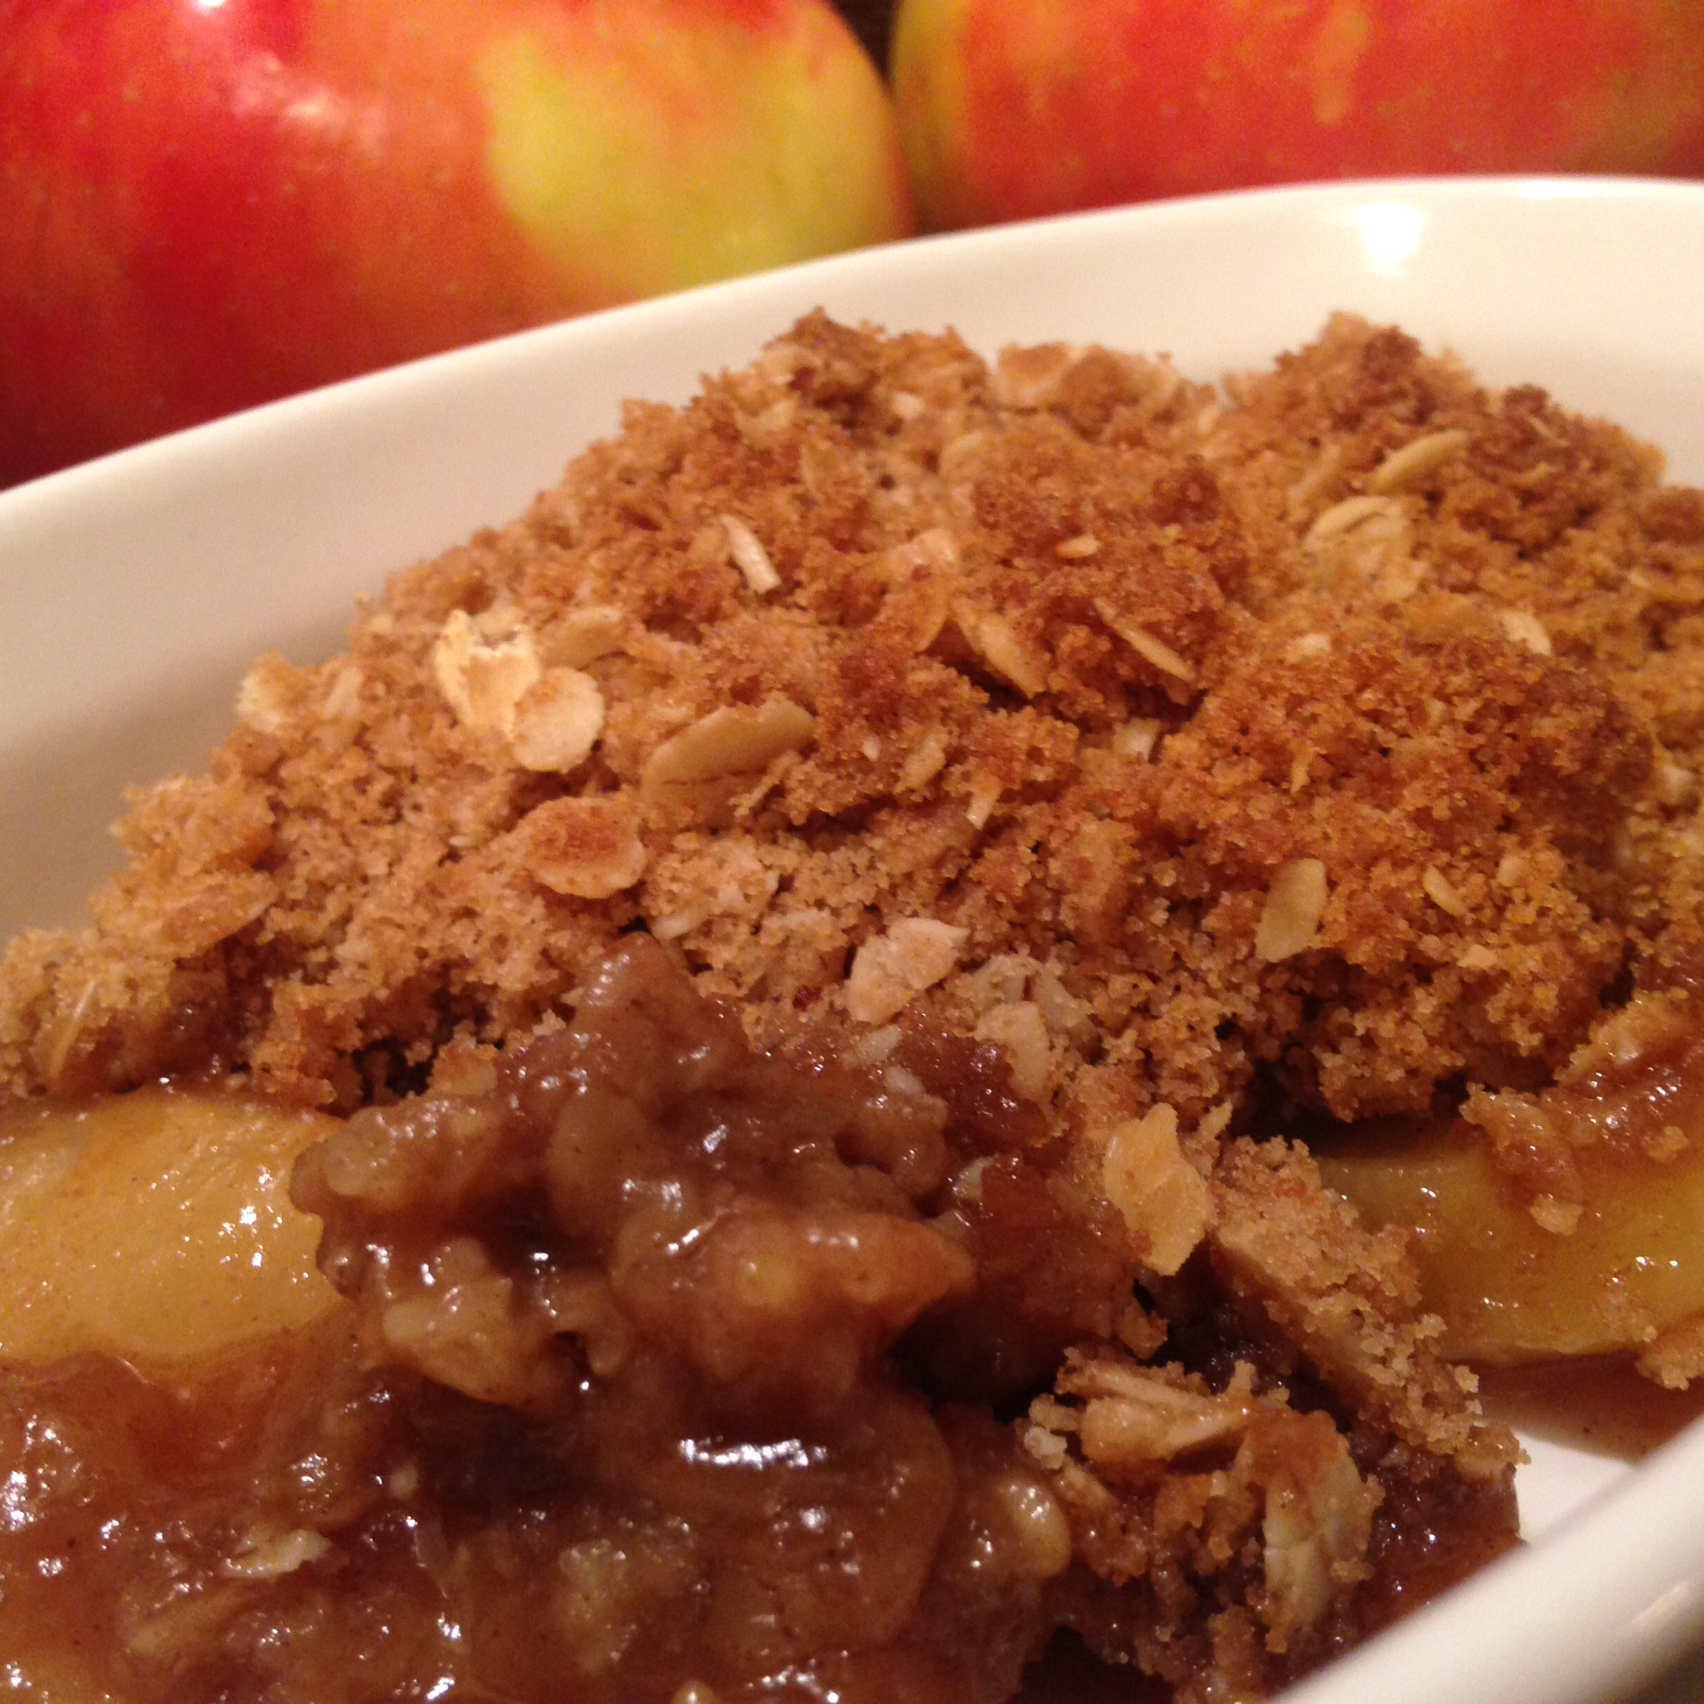 Fern's Apple Crisp